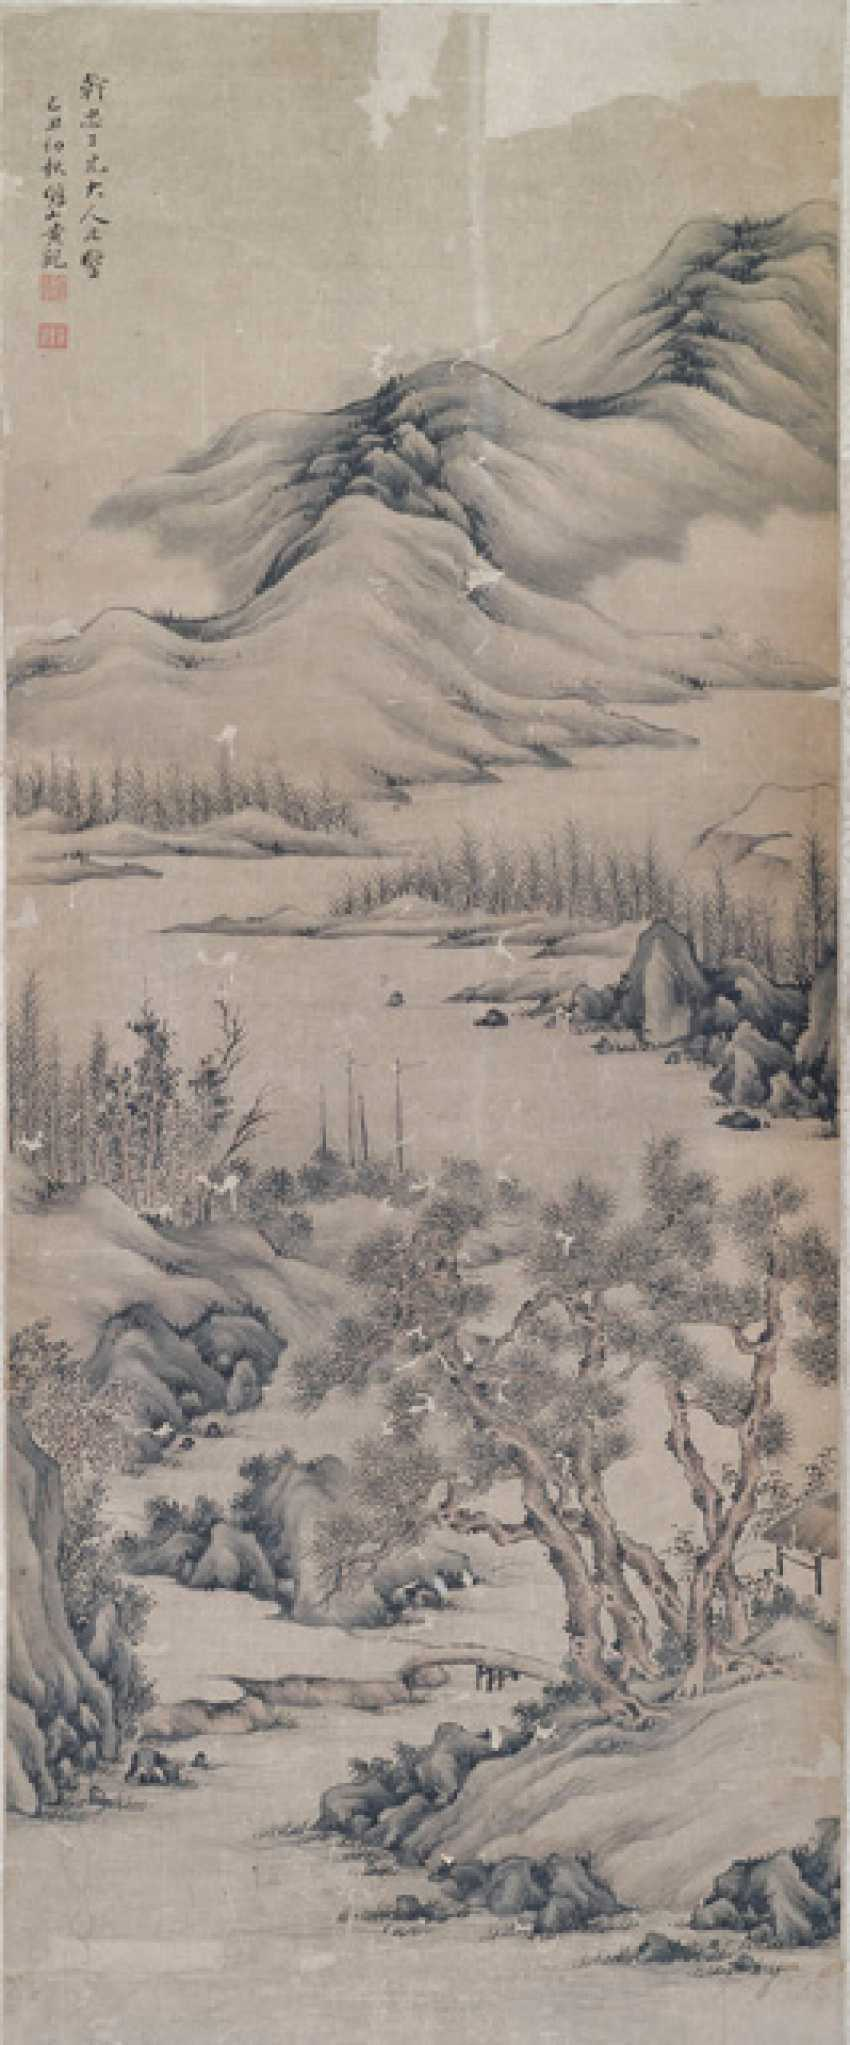 Huang Guan: landscape with pine trees - photo 1